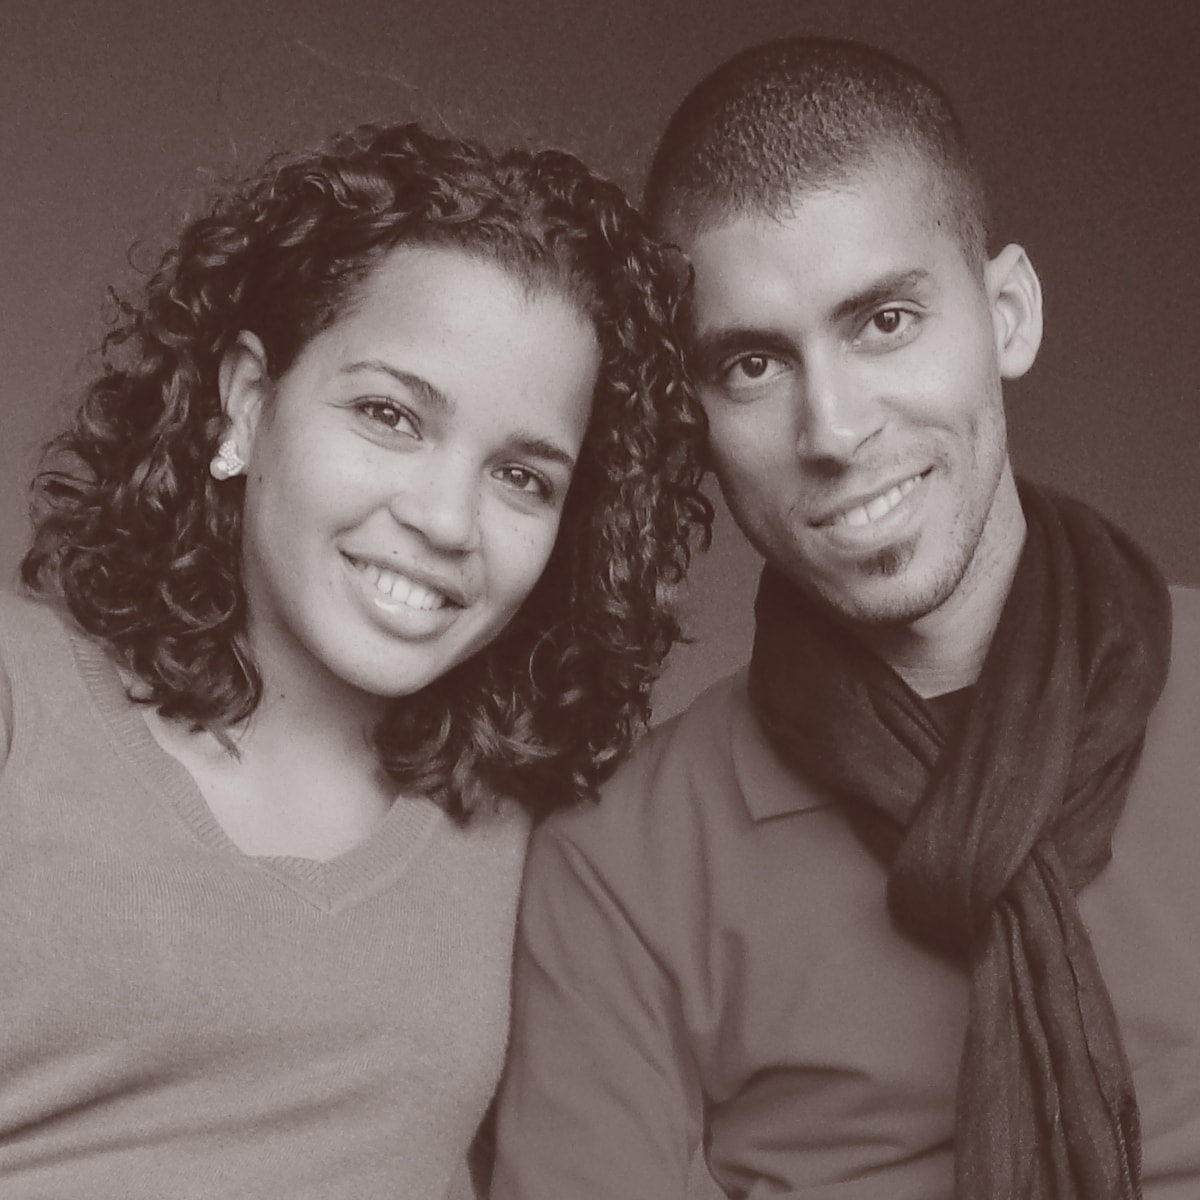 We are a young Cape Verdean couple, parents (to be